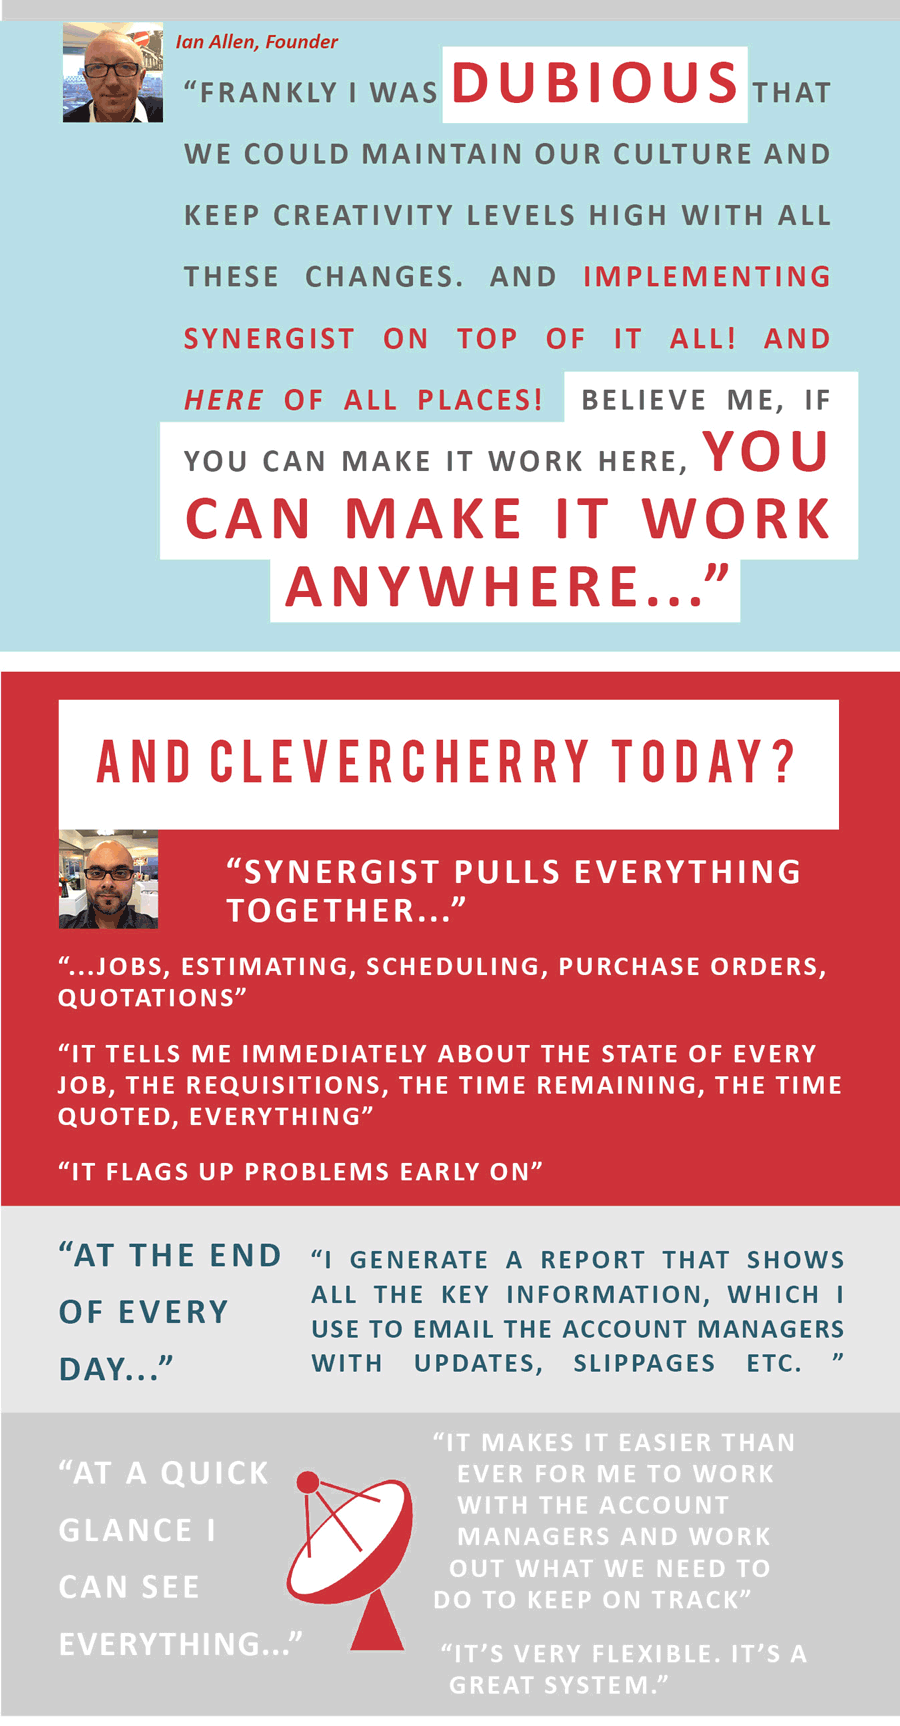 Clevercherry case study infographic